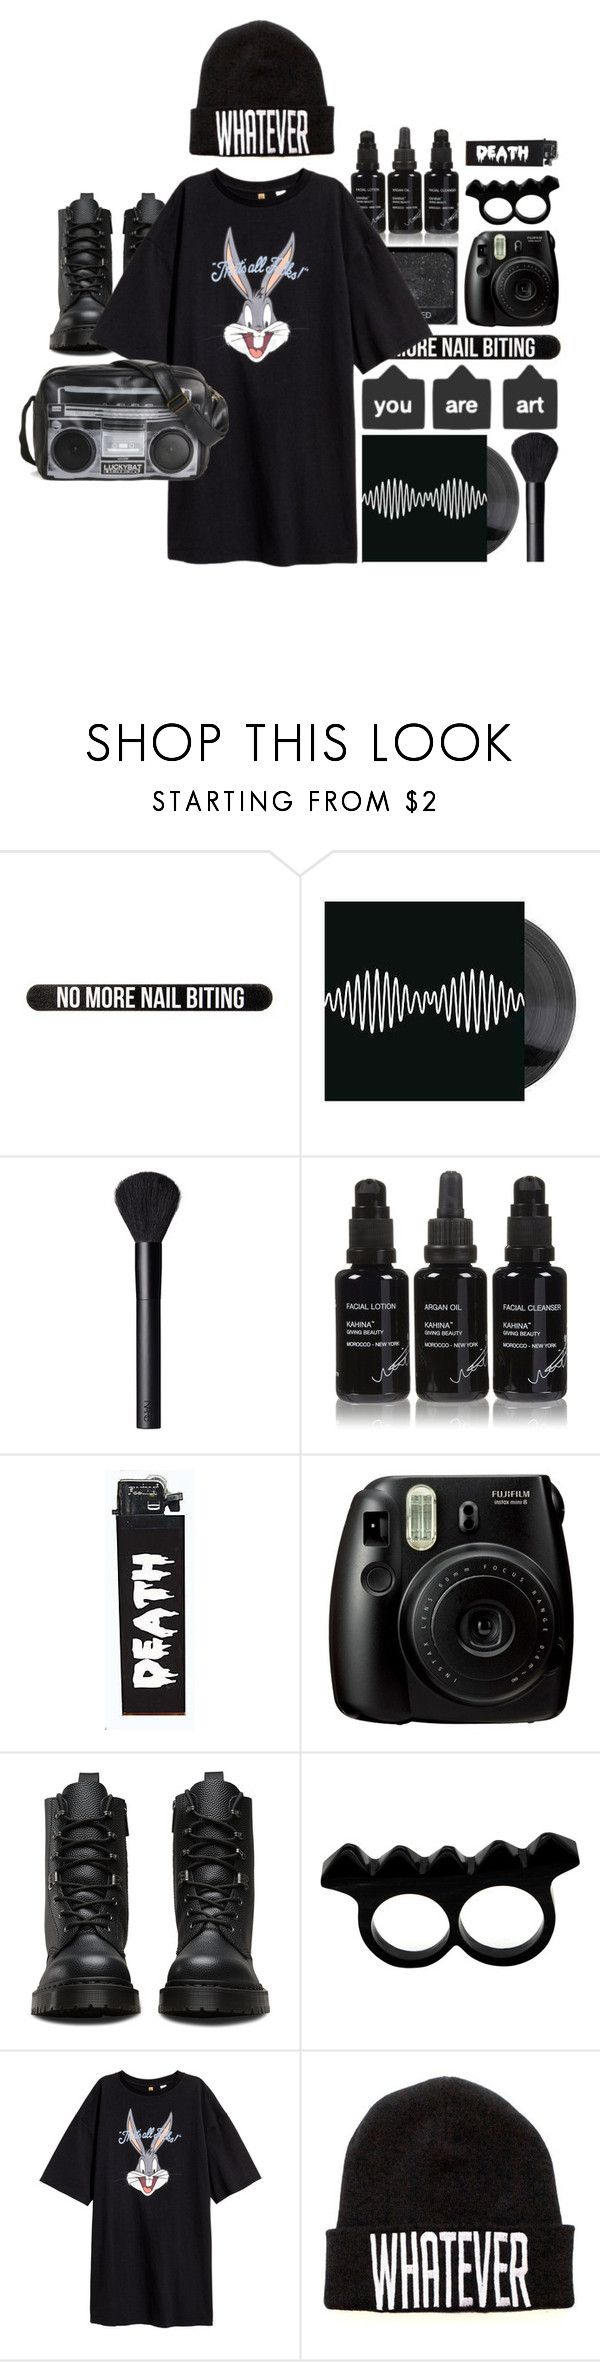 """Whatever Doc"" by olivia-pullman on Polyvore featuring Bershka, NARS Cosmetics, Kahina Giving Beauty, Fujifilm, Dr. Martens, L'Artisan Créateur, Killstar, Melie Bianco, tshirtdresses and 60secondstyle"